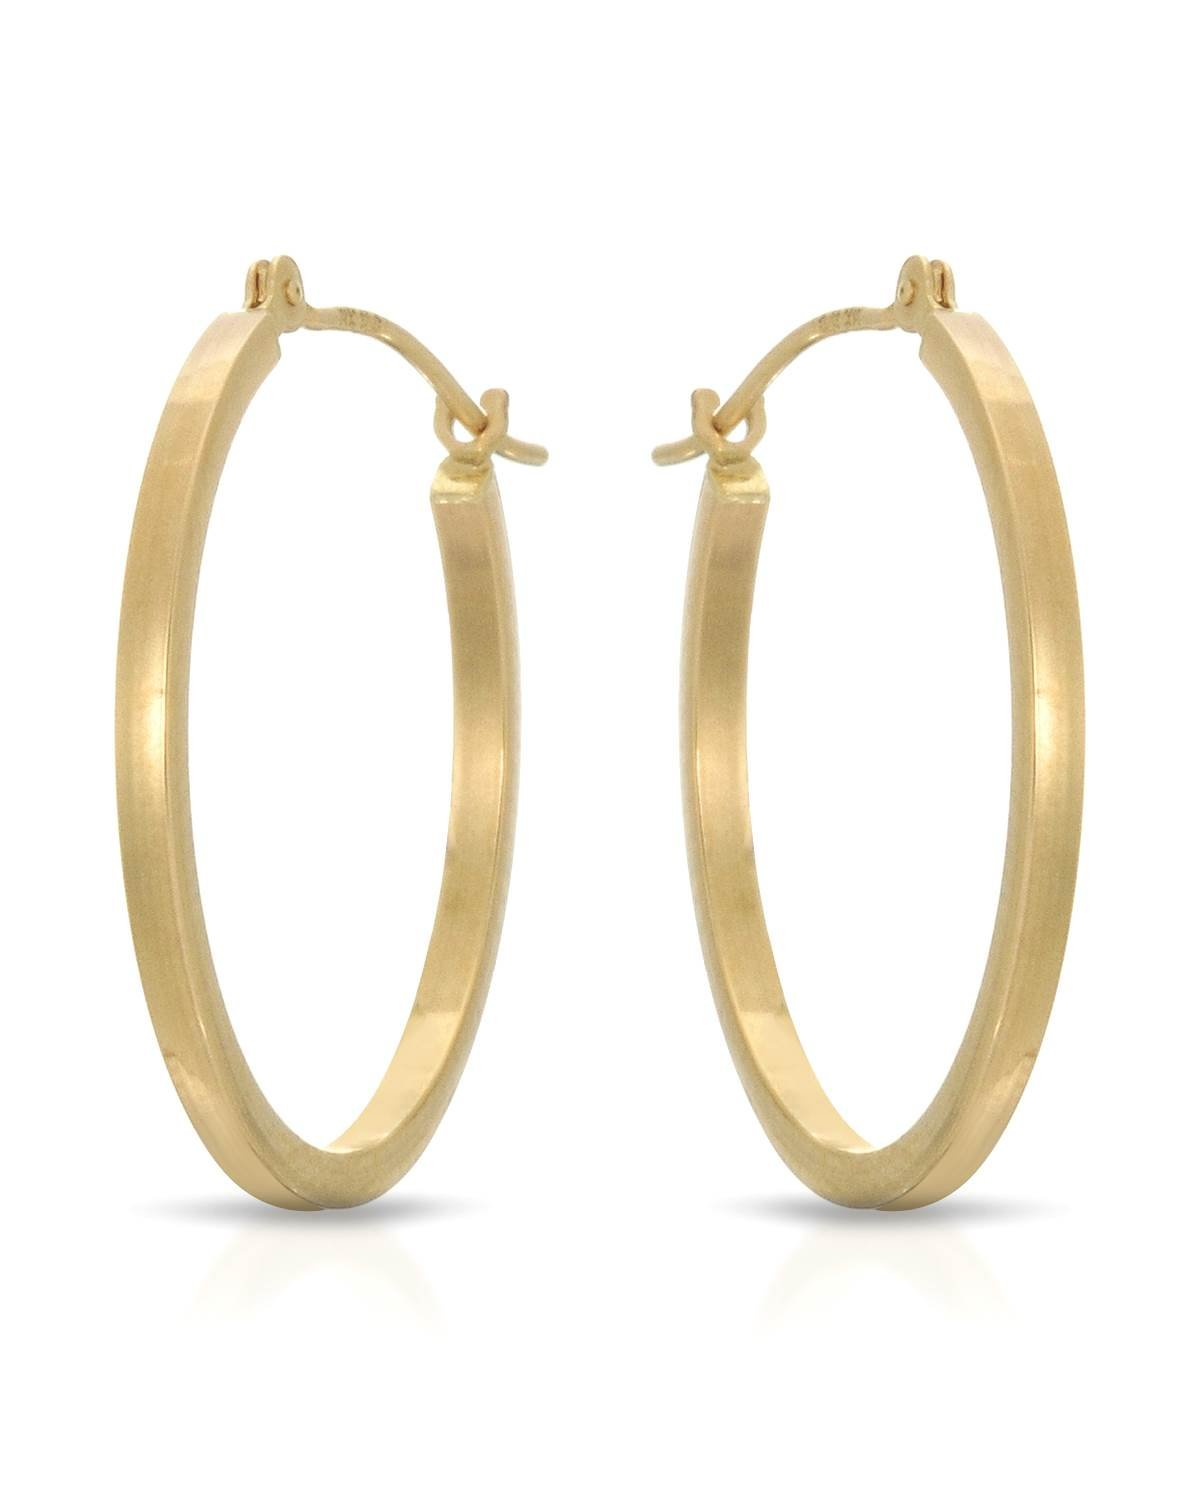 MCS Jewelry 14 Karat Yellow Gold Classic Square Hoop Earrings (Diameter: 25 mm)